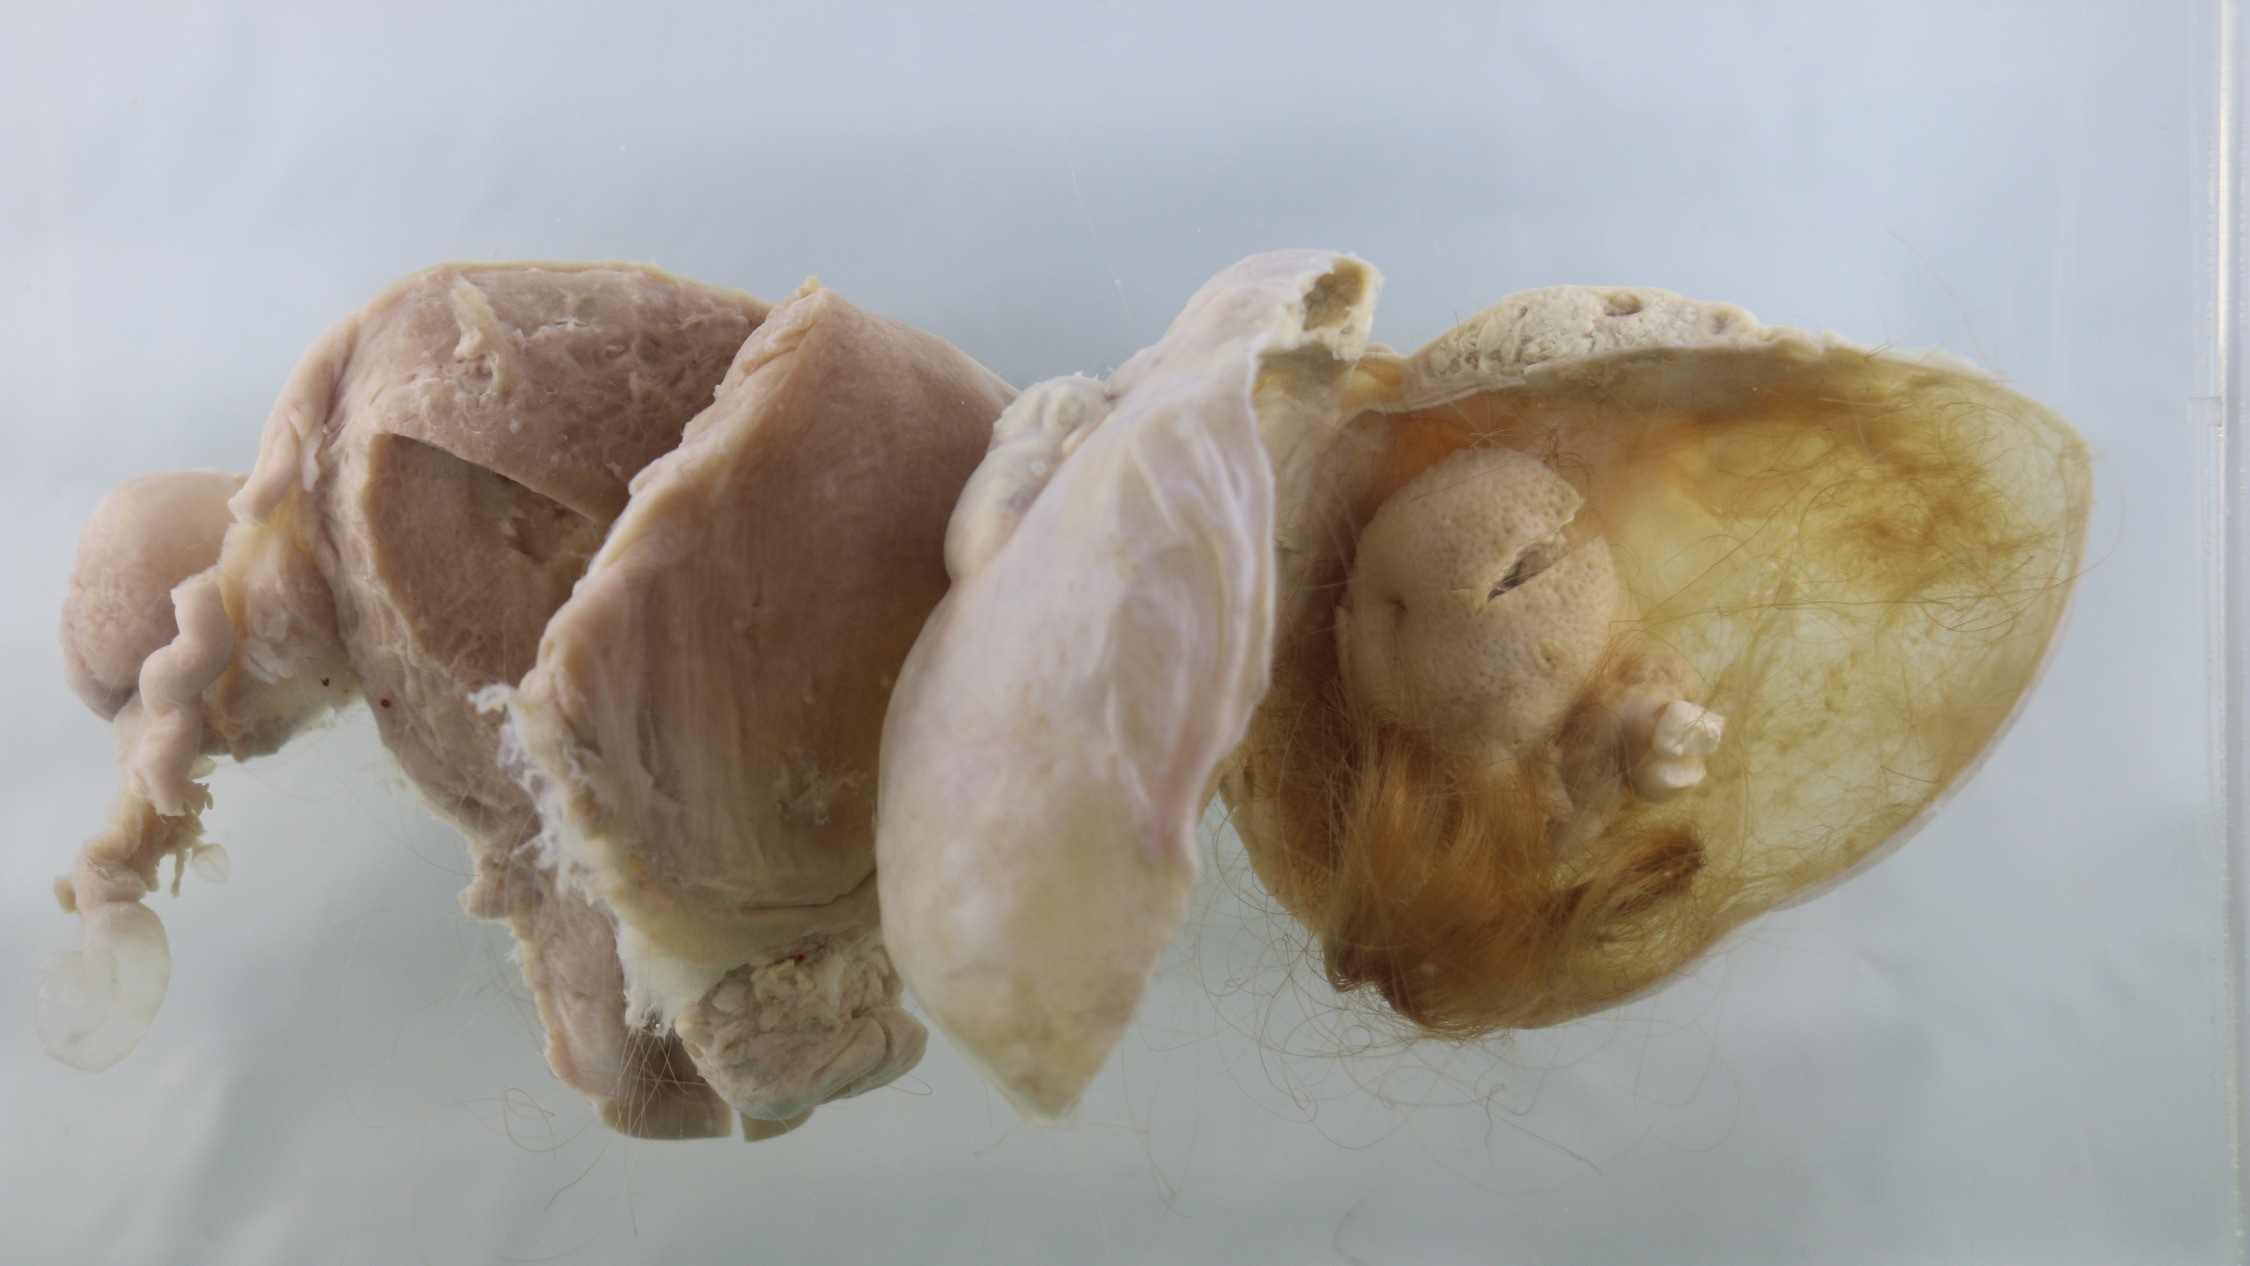 Teratoma, or 'monster tumour'; a benign tumour in an ovary that